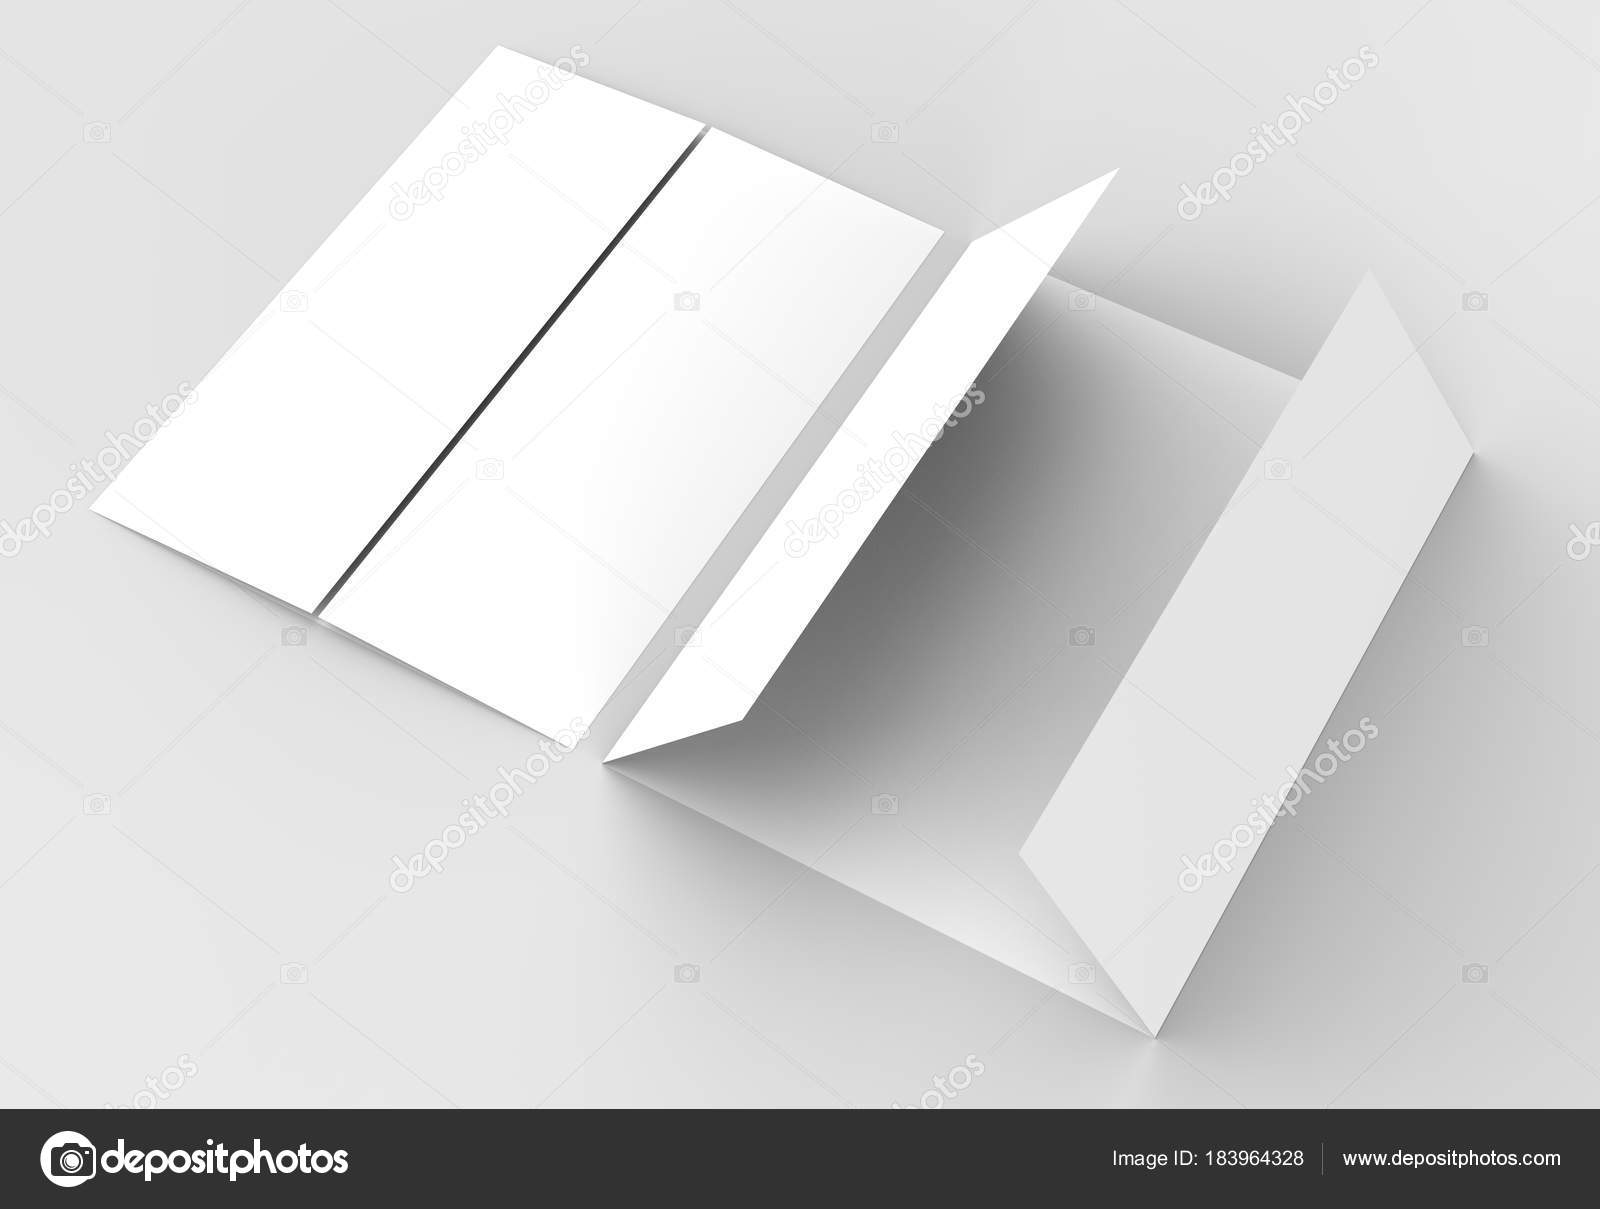 Double Gate Fold Vertical Brochure Mock Up Isolated On Soft Gray  Background. 3D Illustratin U2014 Photo By Sarmdy